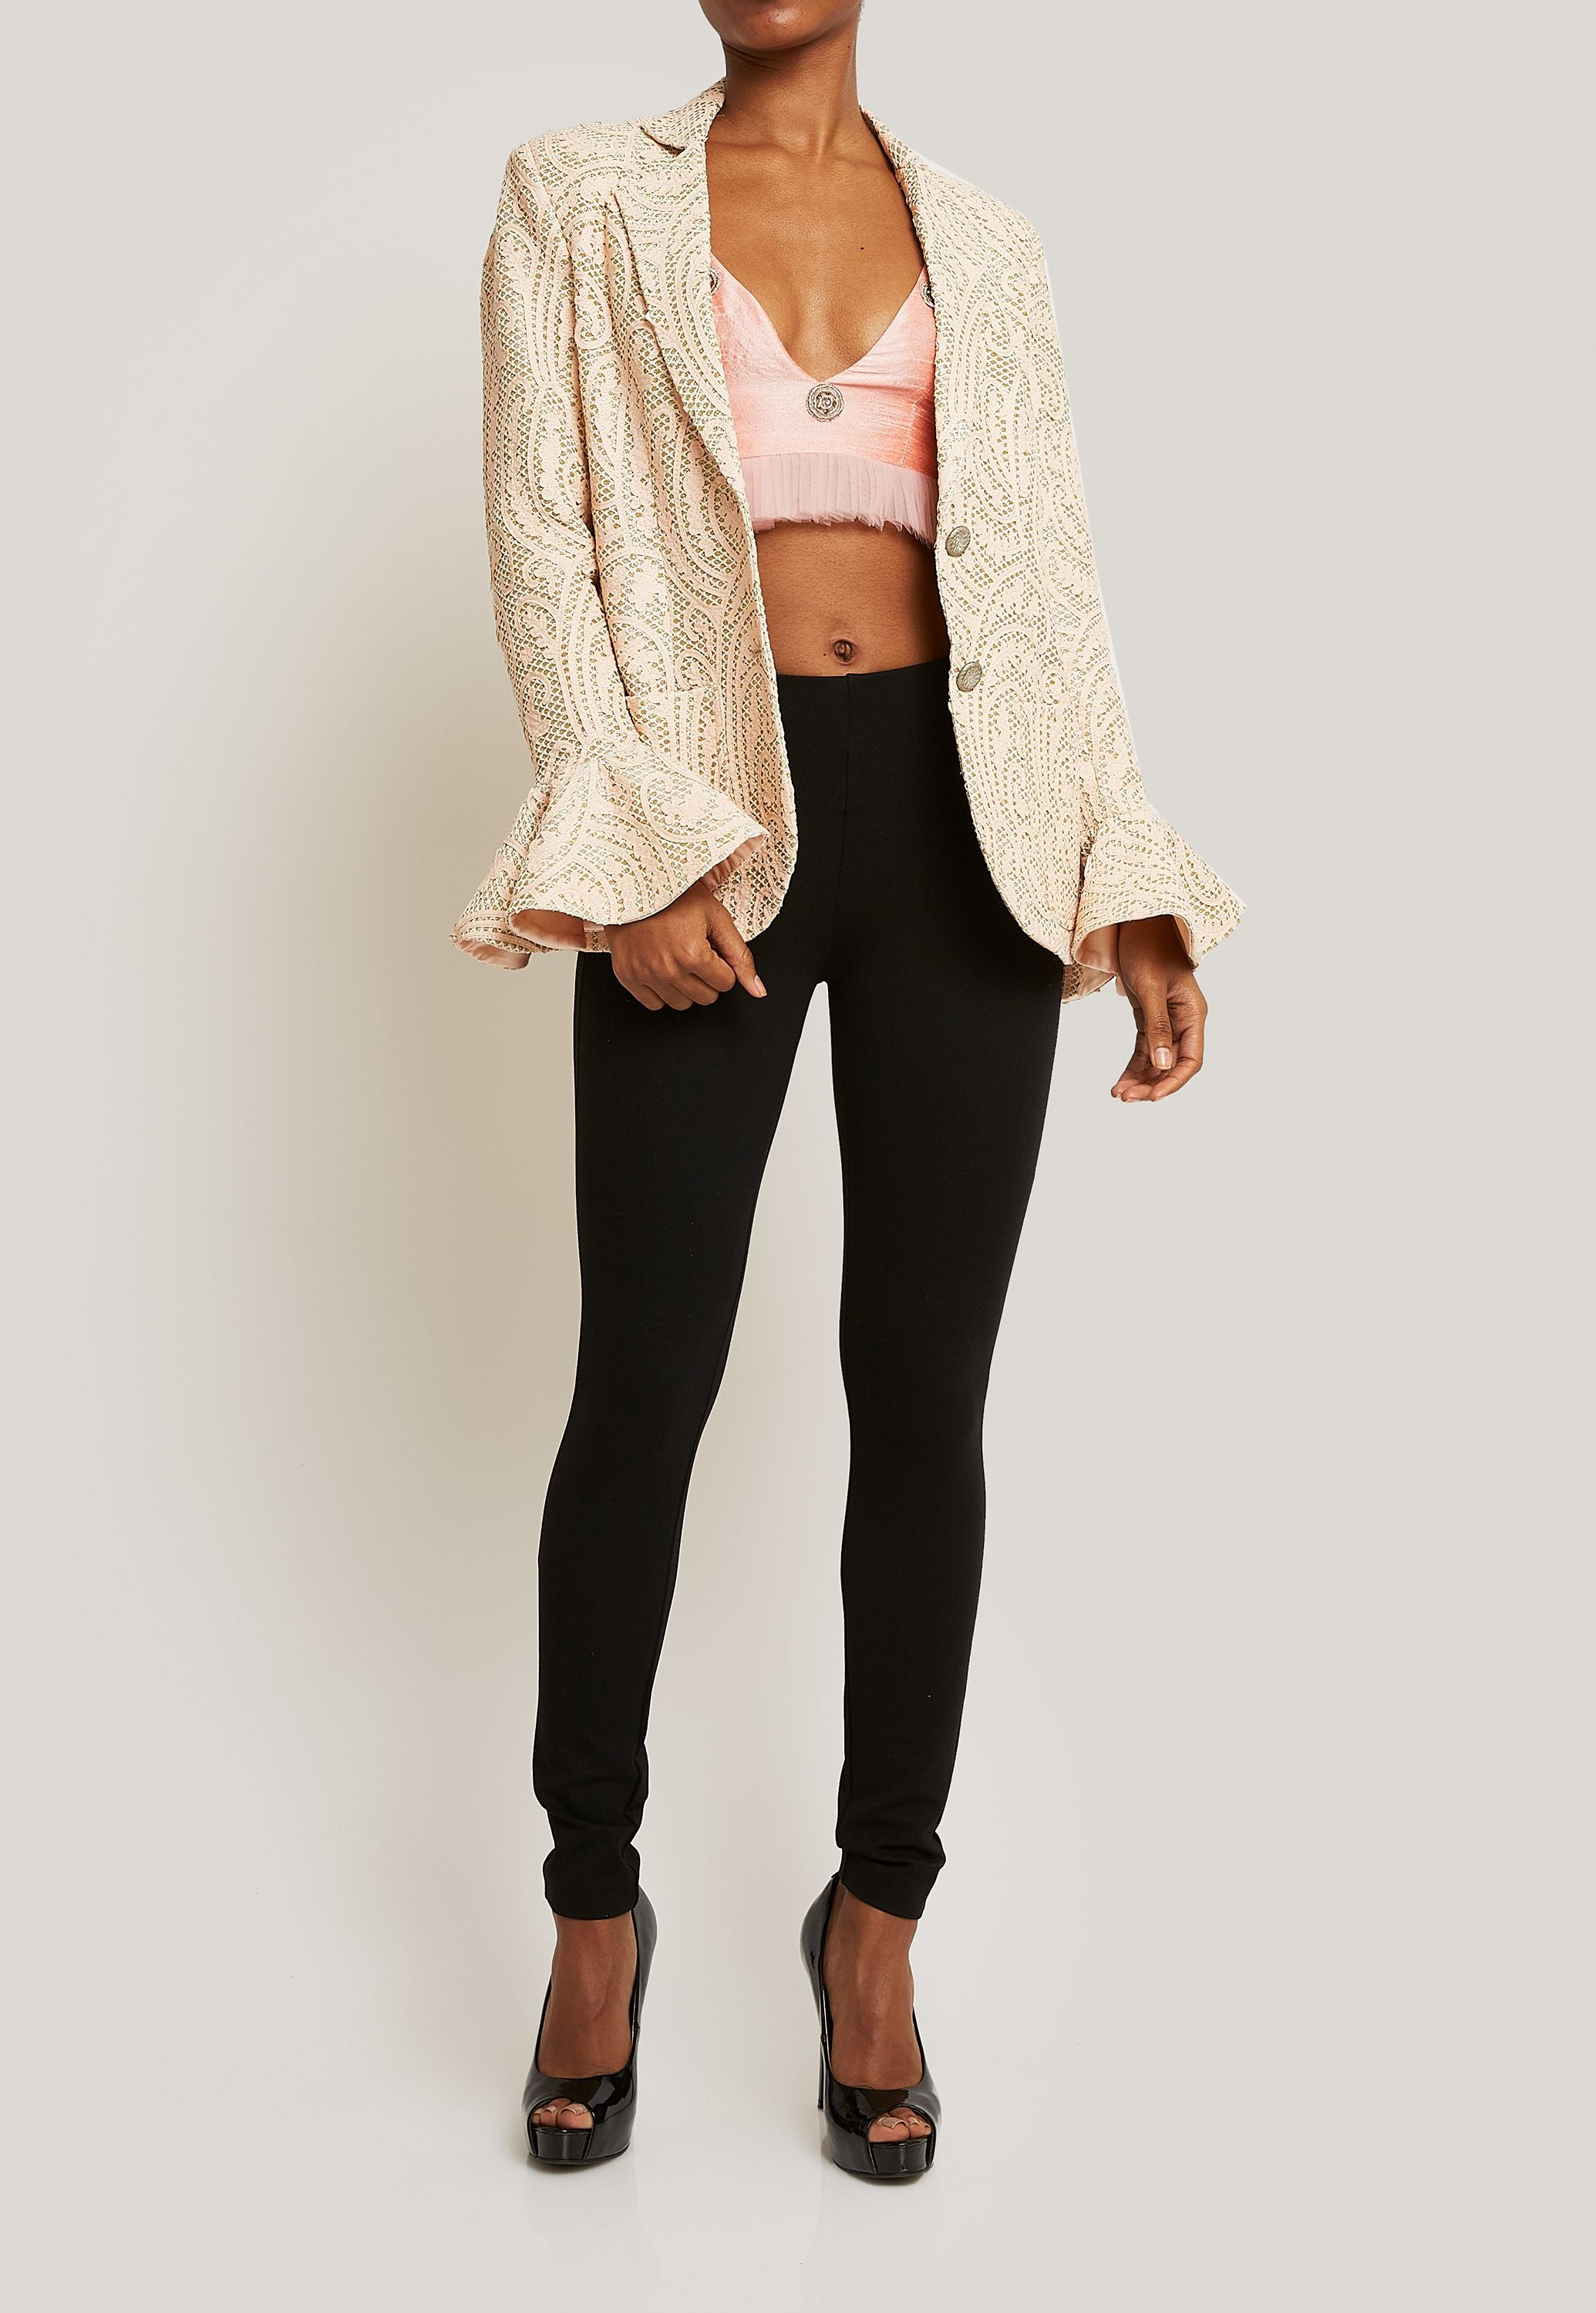 BLUSH PINK JACQUARD JACKET